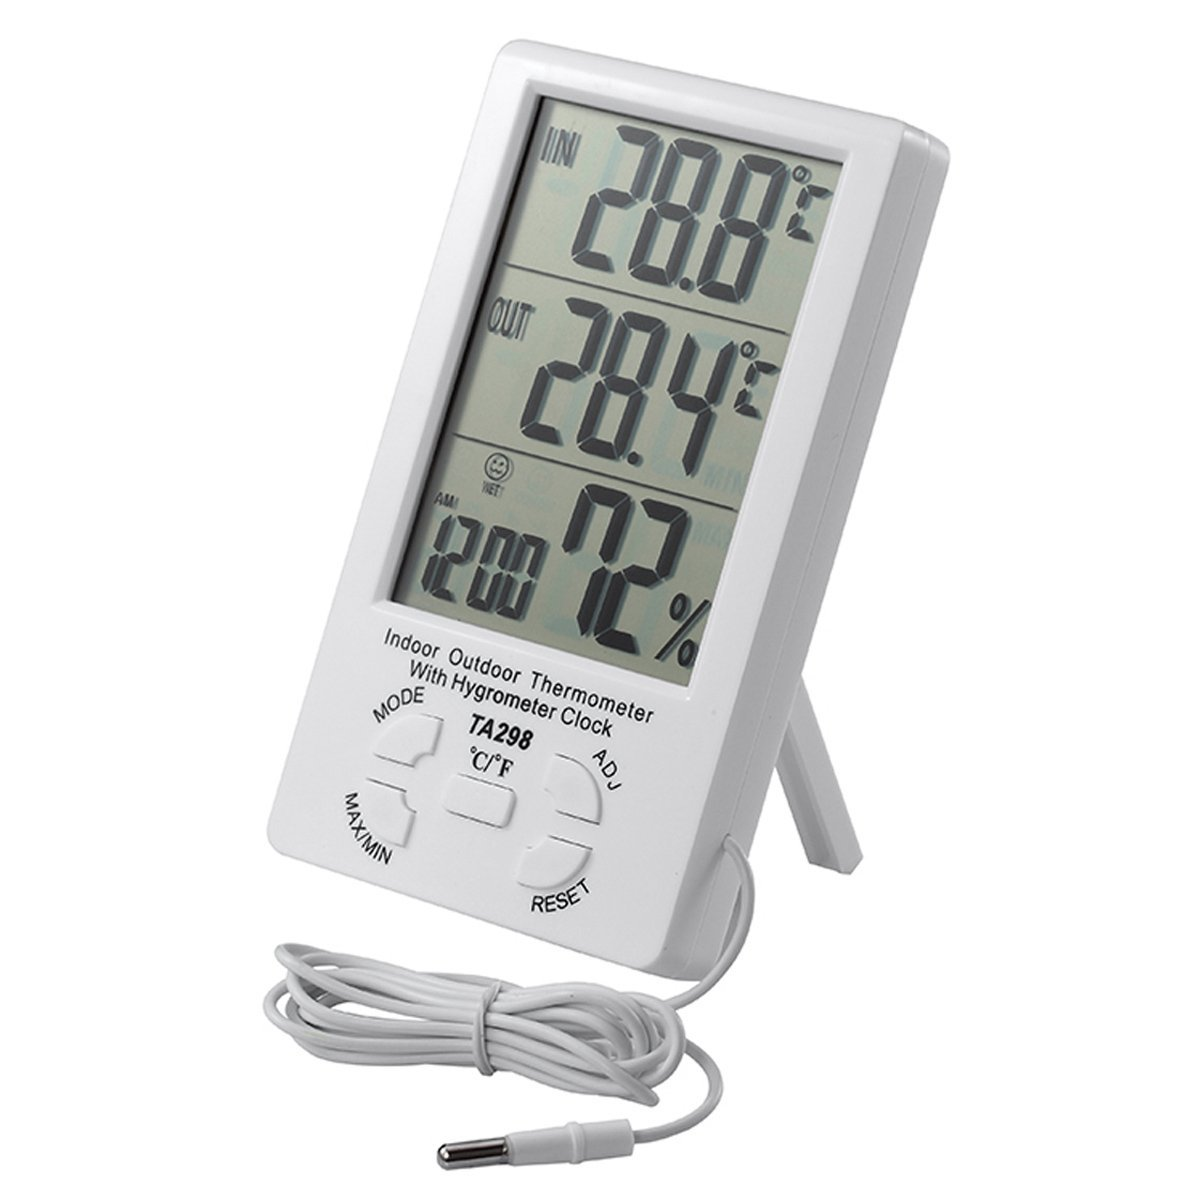 IDS Home Digital Indoor Outdoor thermometer Hygrometer Alarm Clock with 5'' LCD Display